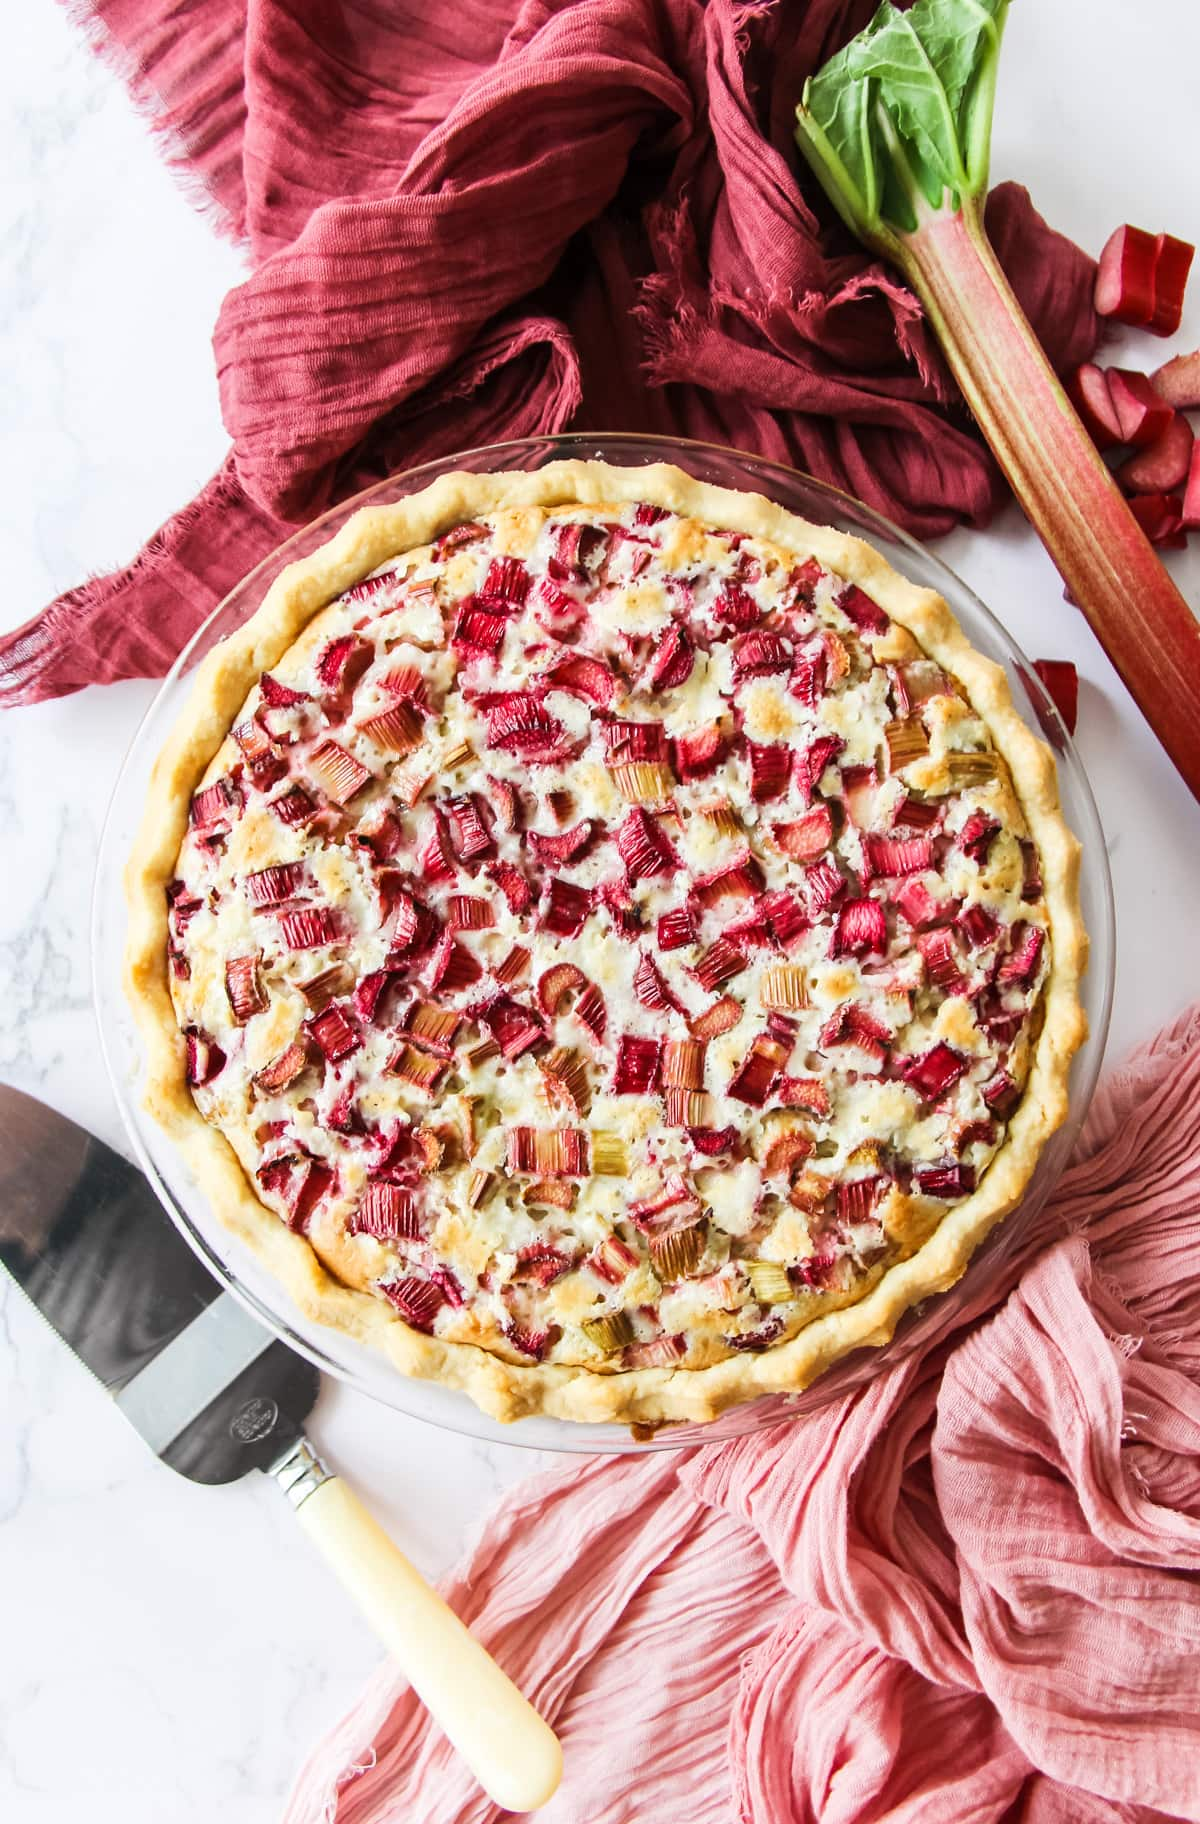 a top down view of a baked rhubarb custard pie. in the background are pink and wine coloured napkins, a rhubarb stock, pieces of chopped rhubarb and a pie server